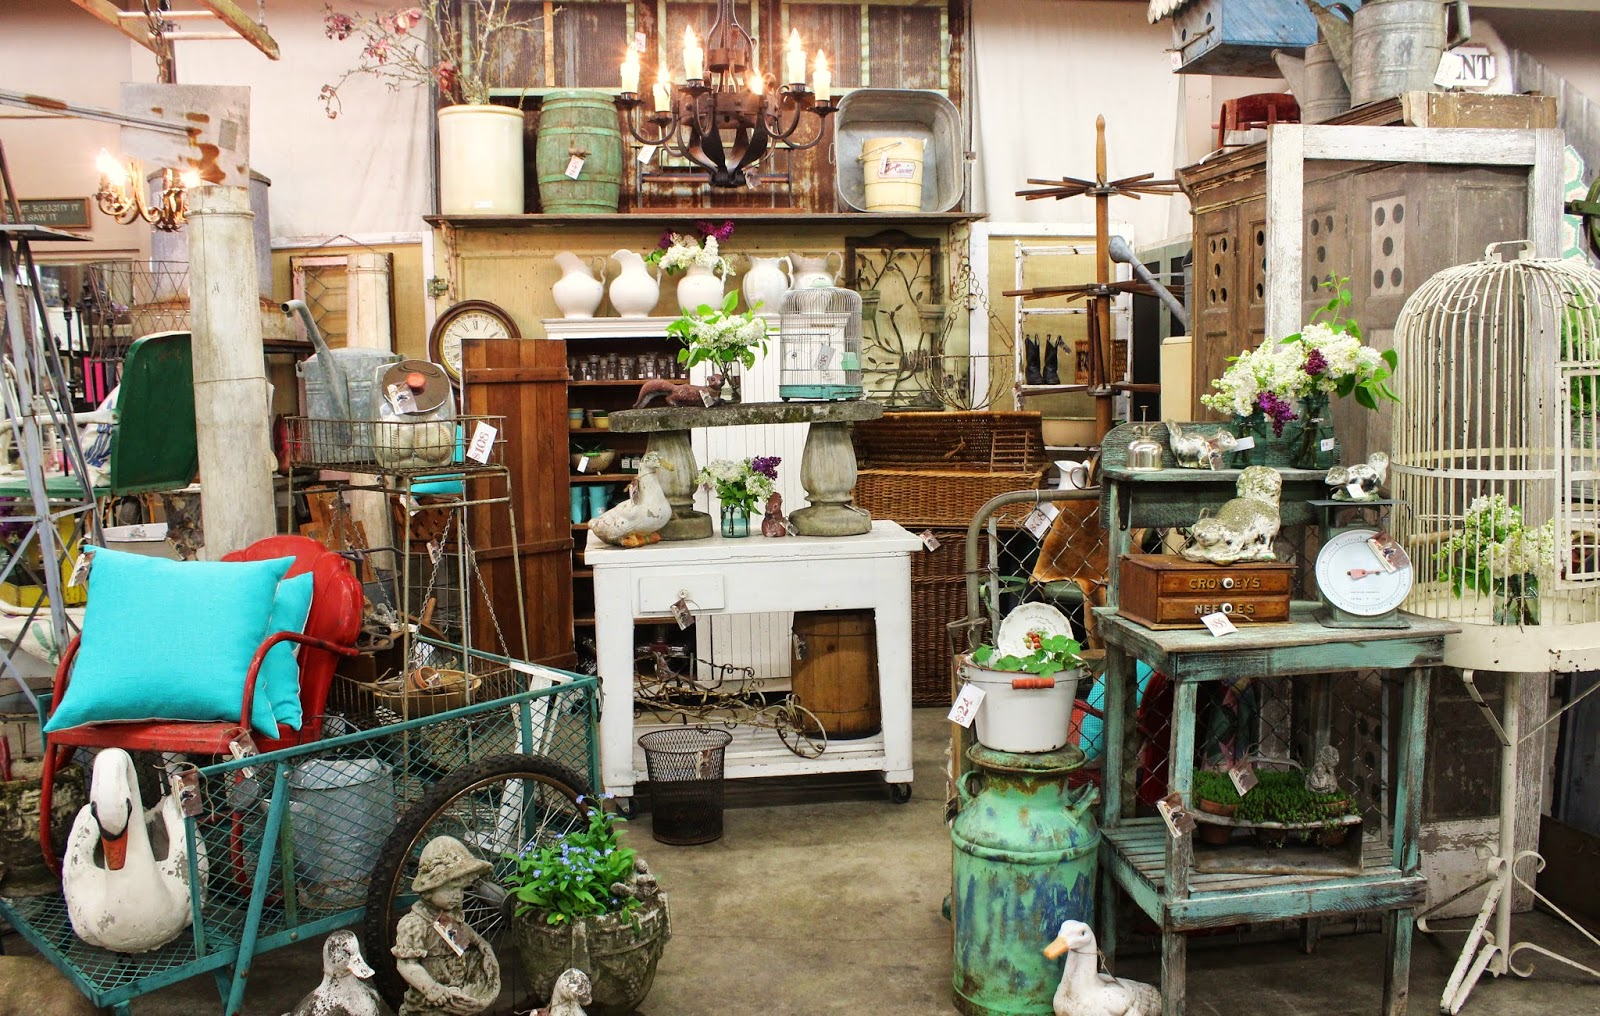 Monticello antique marketplace home garden show final sneak peeks for Portland spring home and garden show 2017